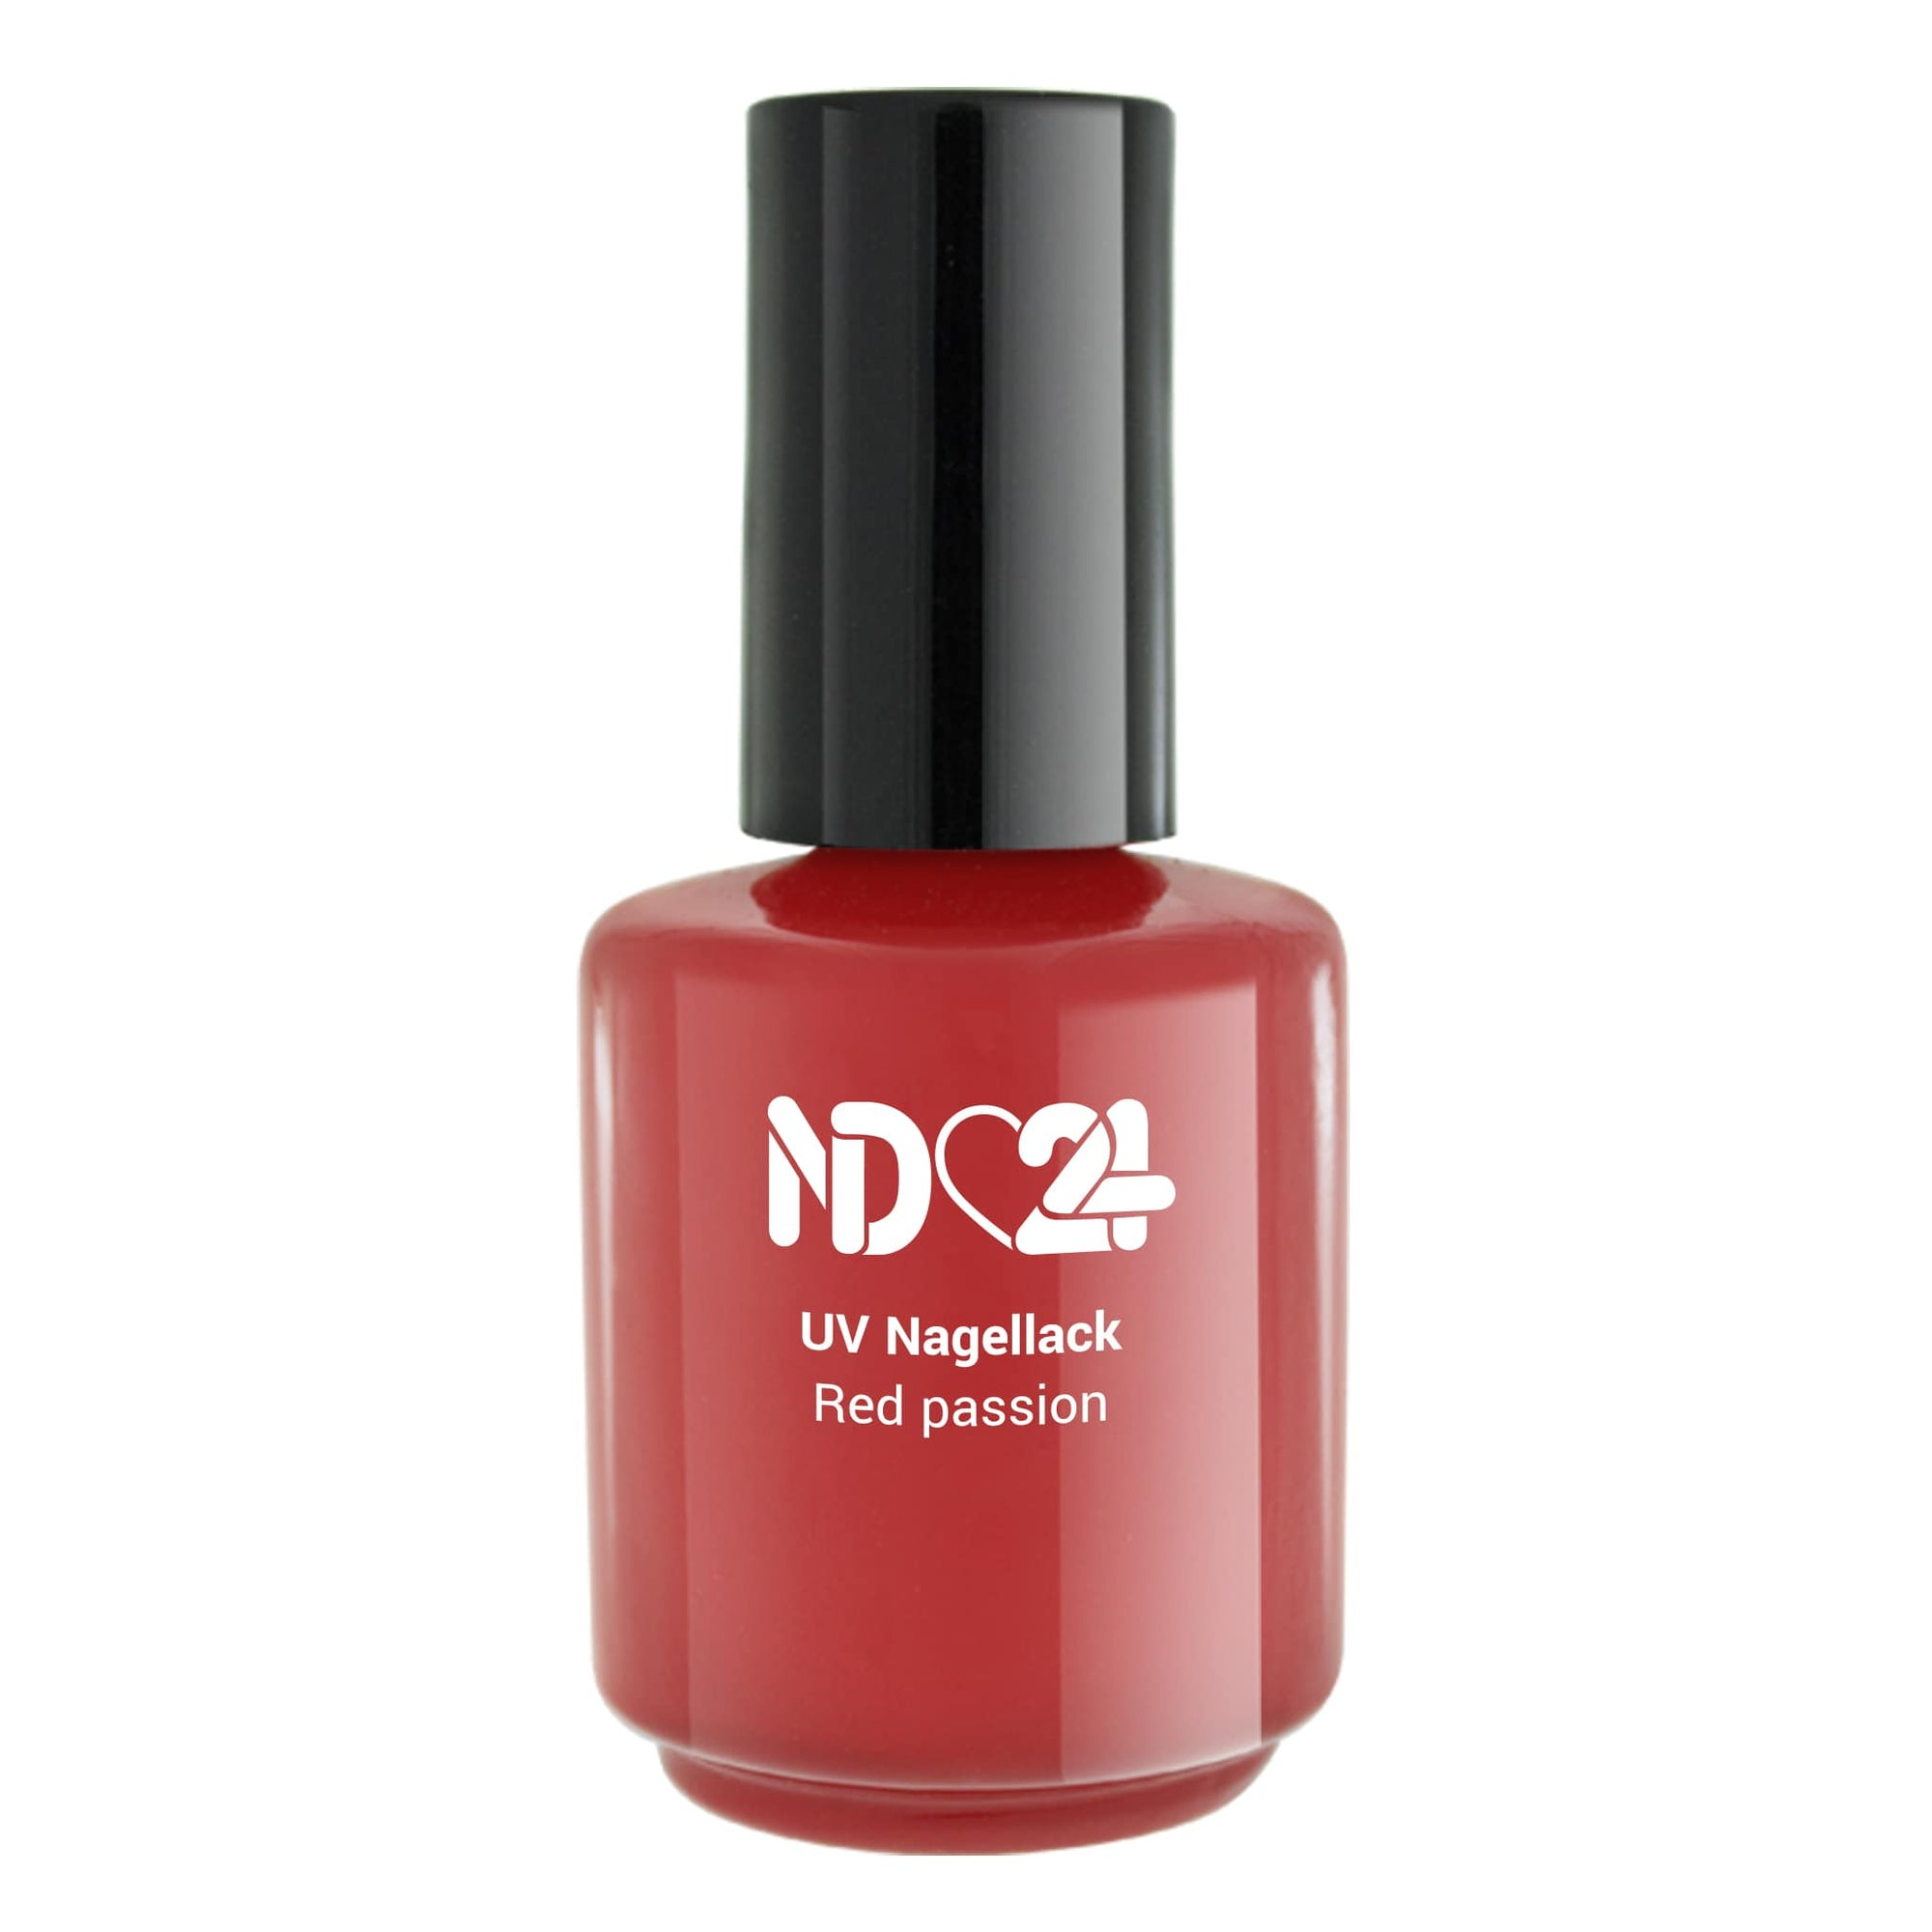 UV Nagellack Red passion